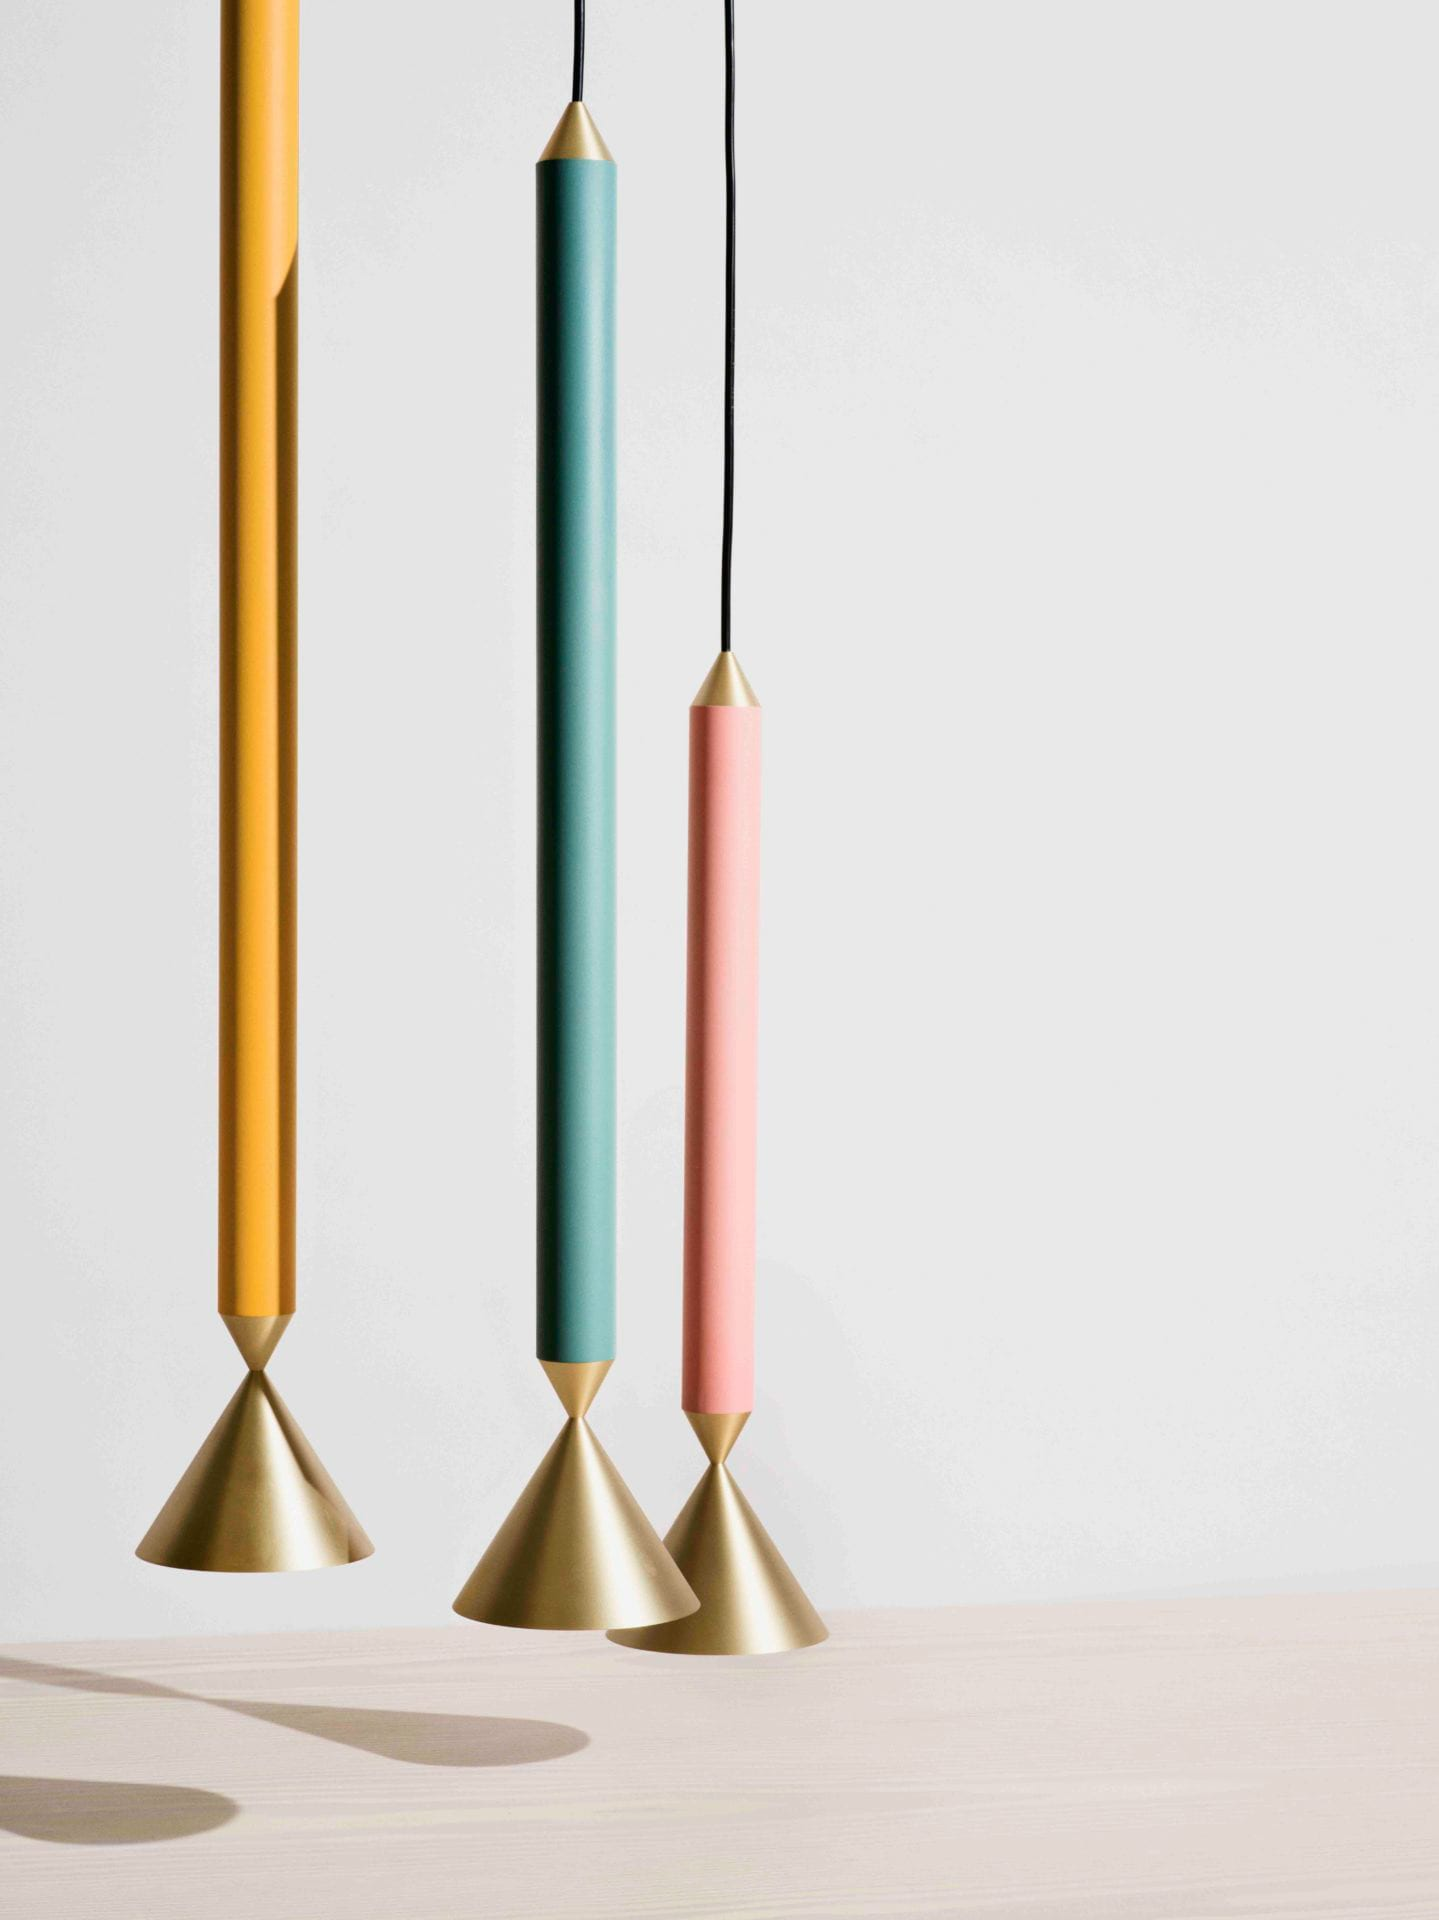 Apollo for Phloc Lighting at Stockholm Furniture Fair 2018 | Yellowtrace